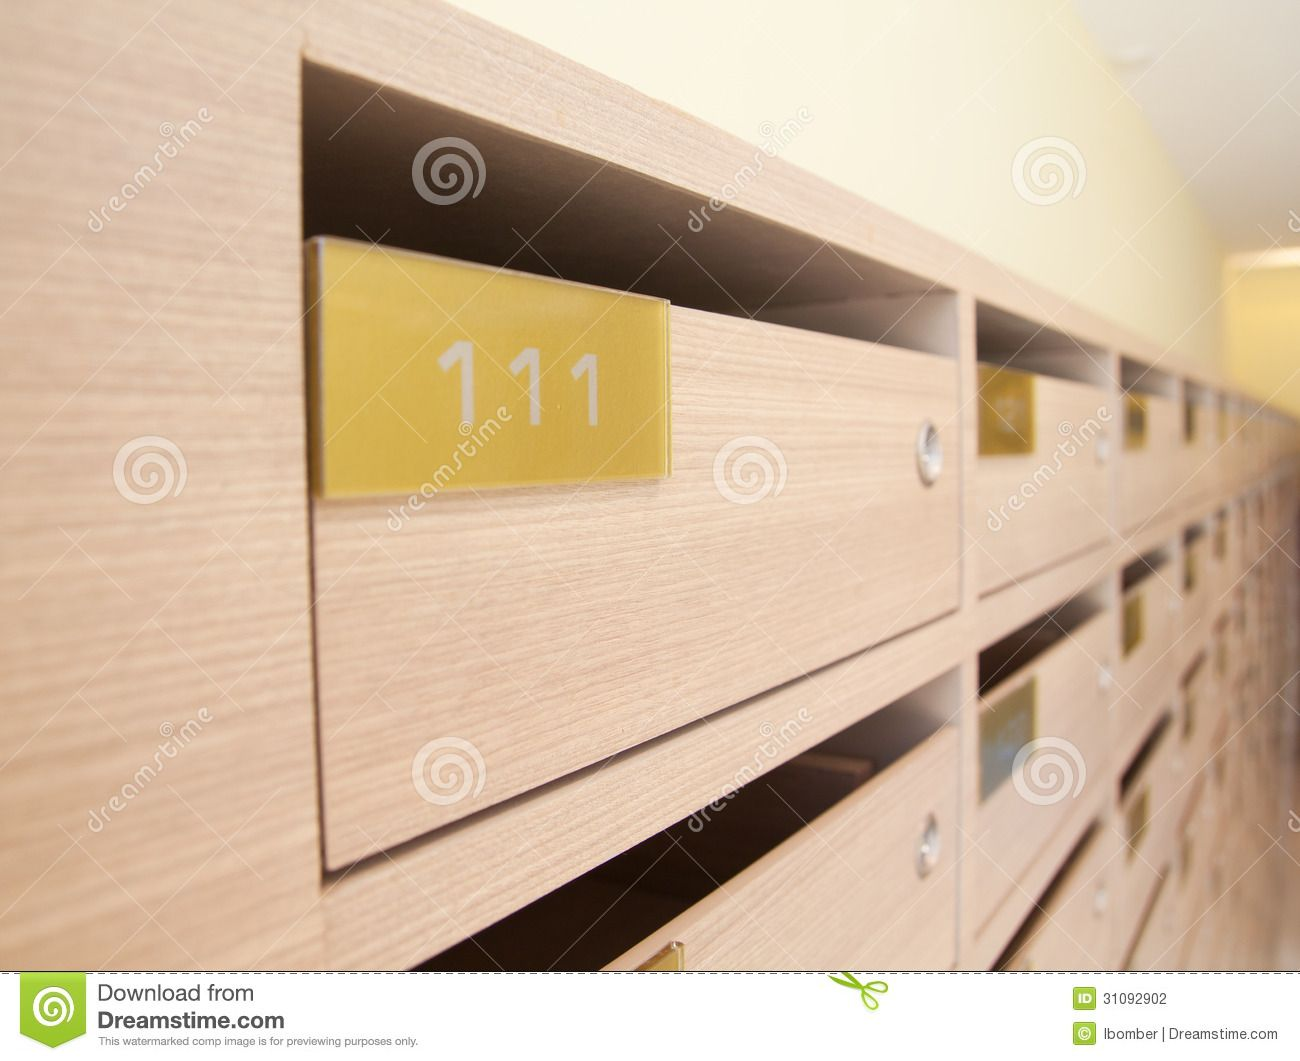 Apartment Mailbox Design Google Search Interiors Merce